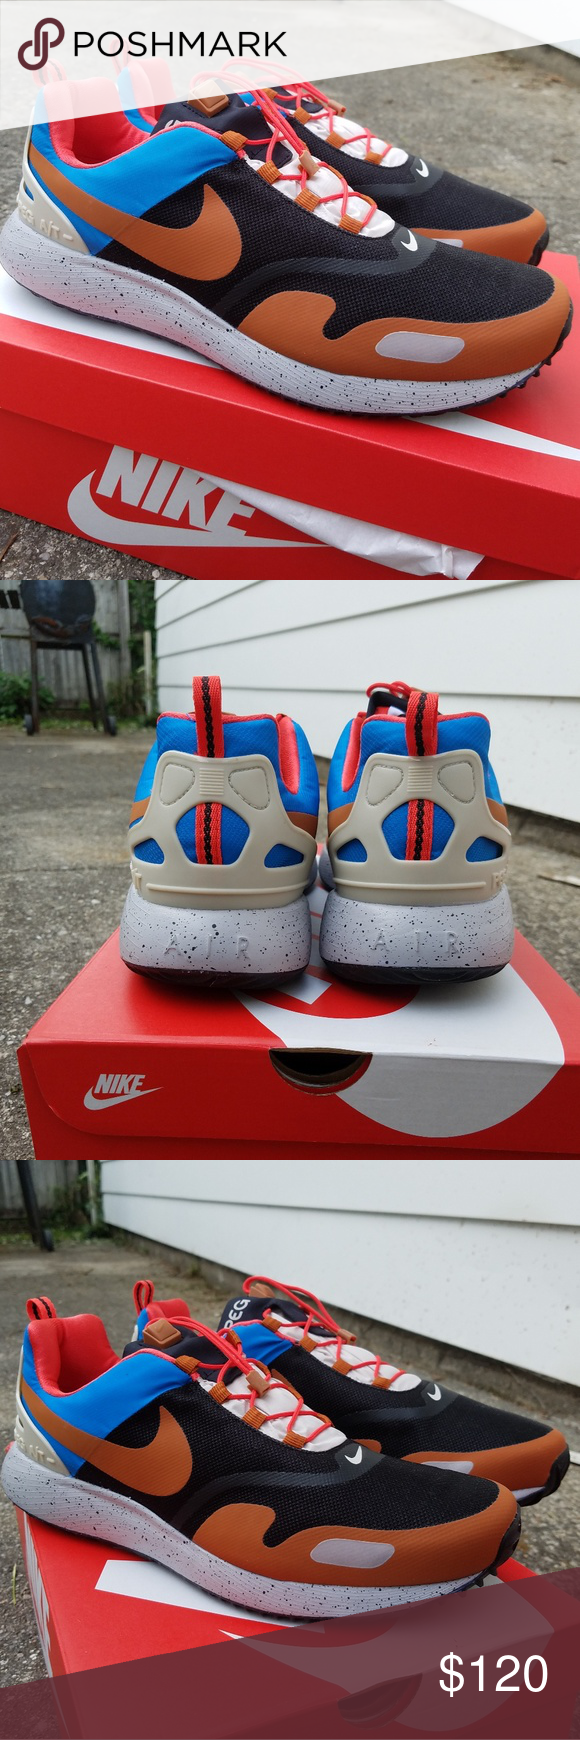 f7a6375892e Nike Air Pegasus A T Winter QS size 12 Brand New in box. Size 12 ...